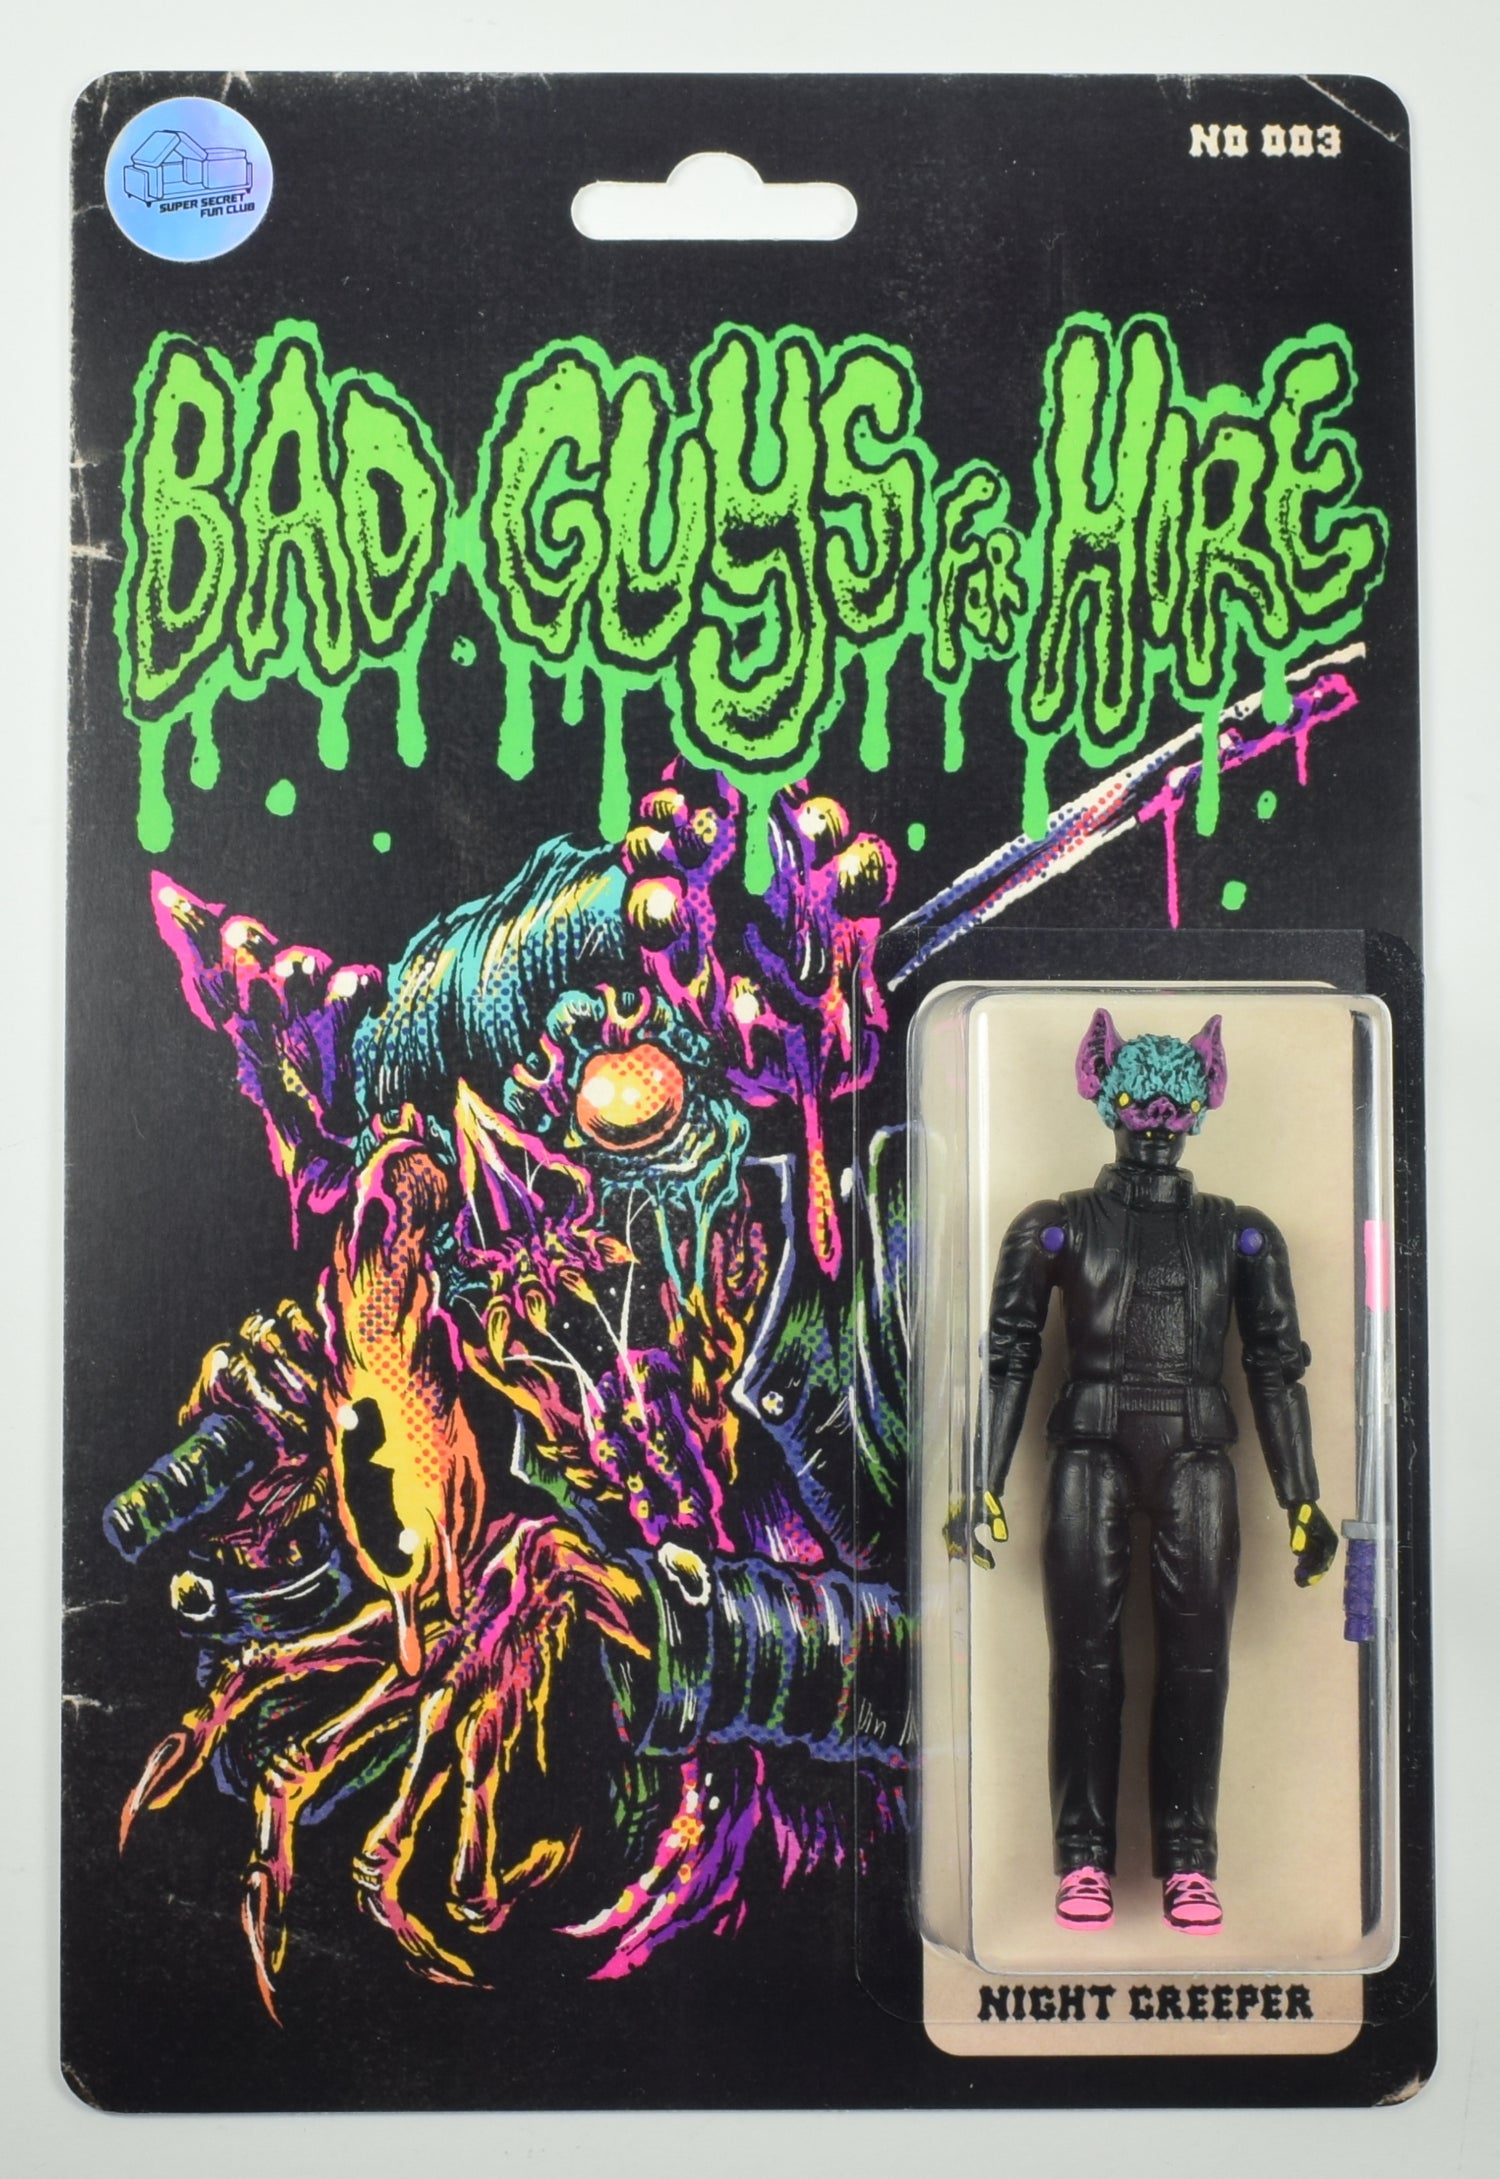 Image of BAD GUYS FOR HIRE - NIGHT CREEPER V3